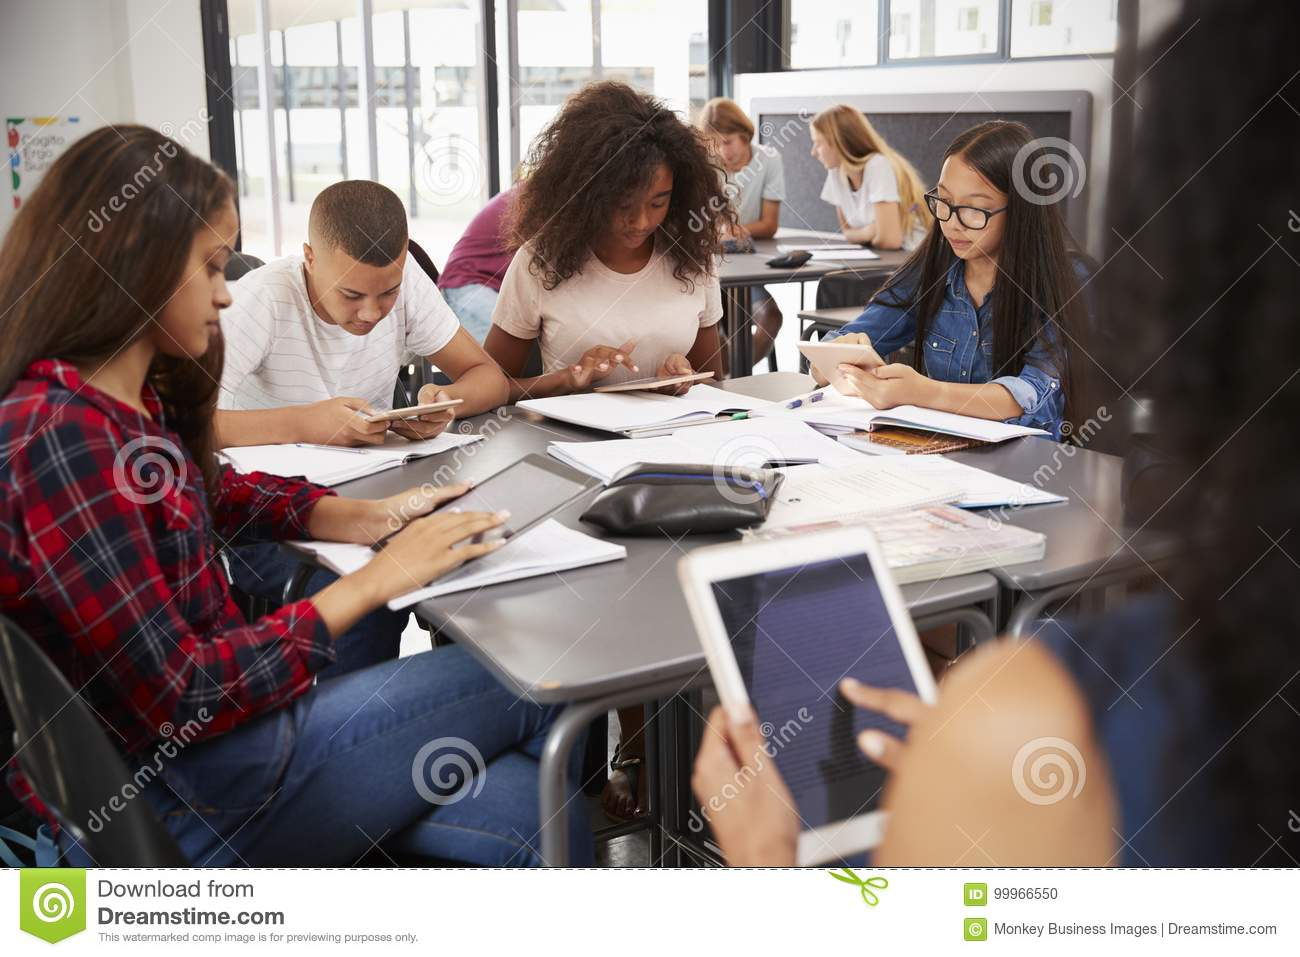 Teacher sitting with high school students using tablets